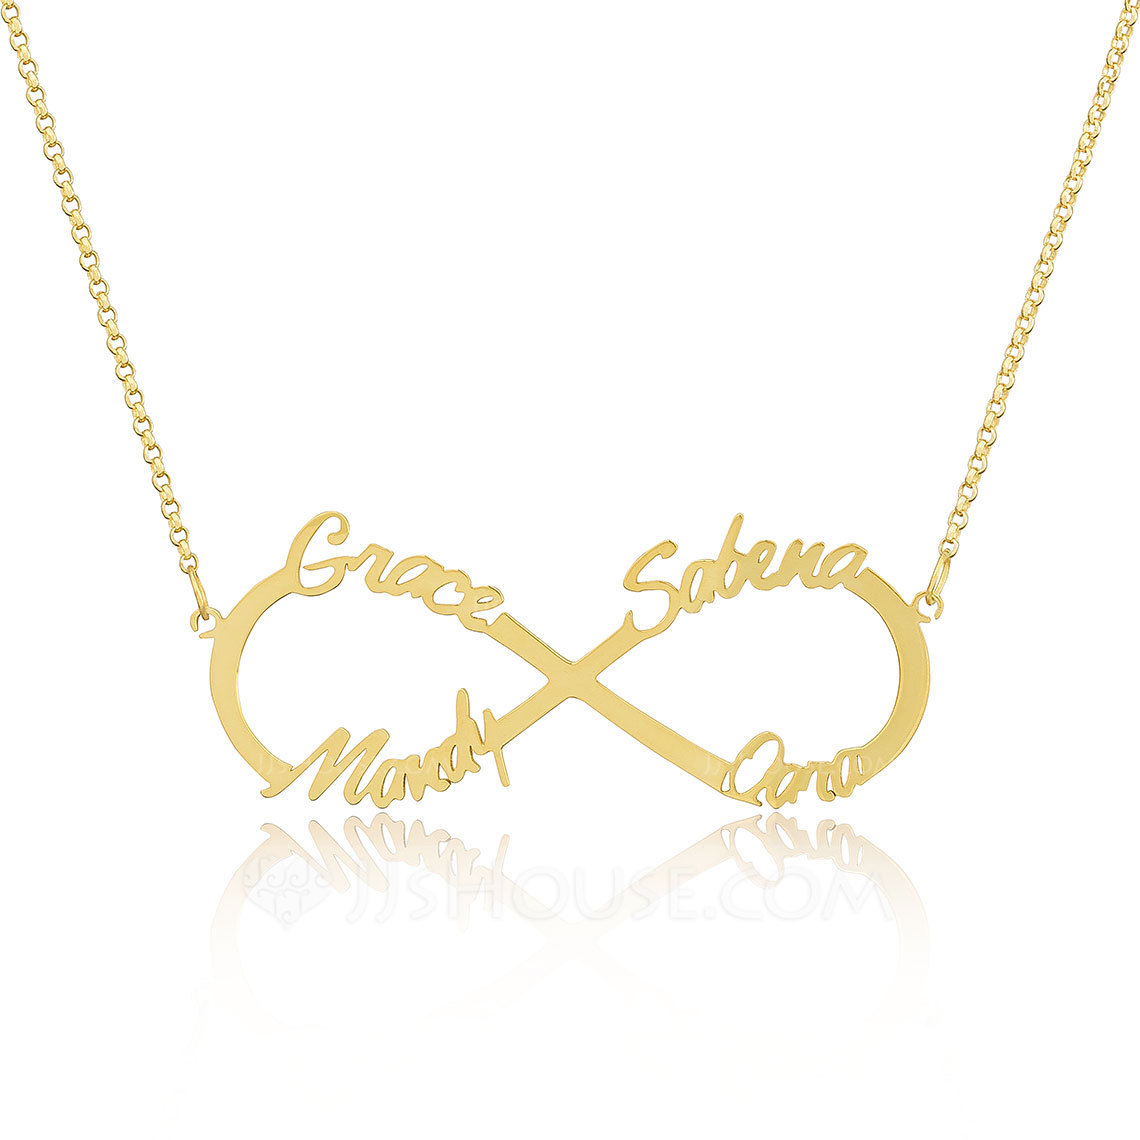 Custom 18k Gold Plated Silver Infinity Four Name Necklace Infinity Name Necklace - Birthday Gifts Mother's Day Gifts